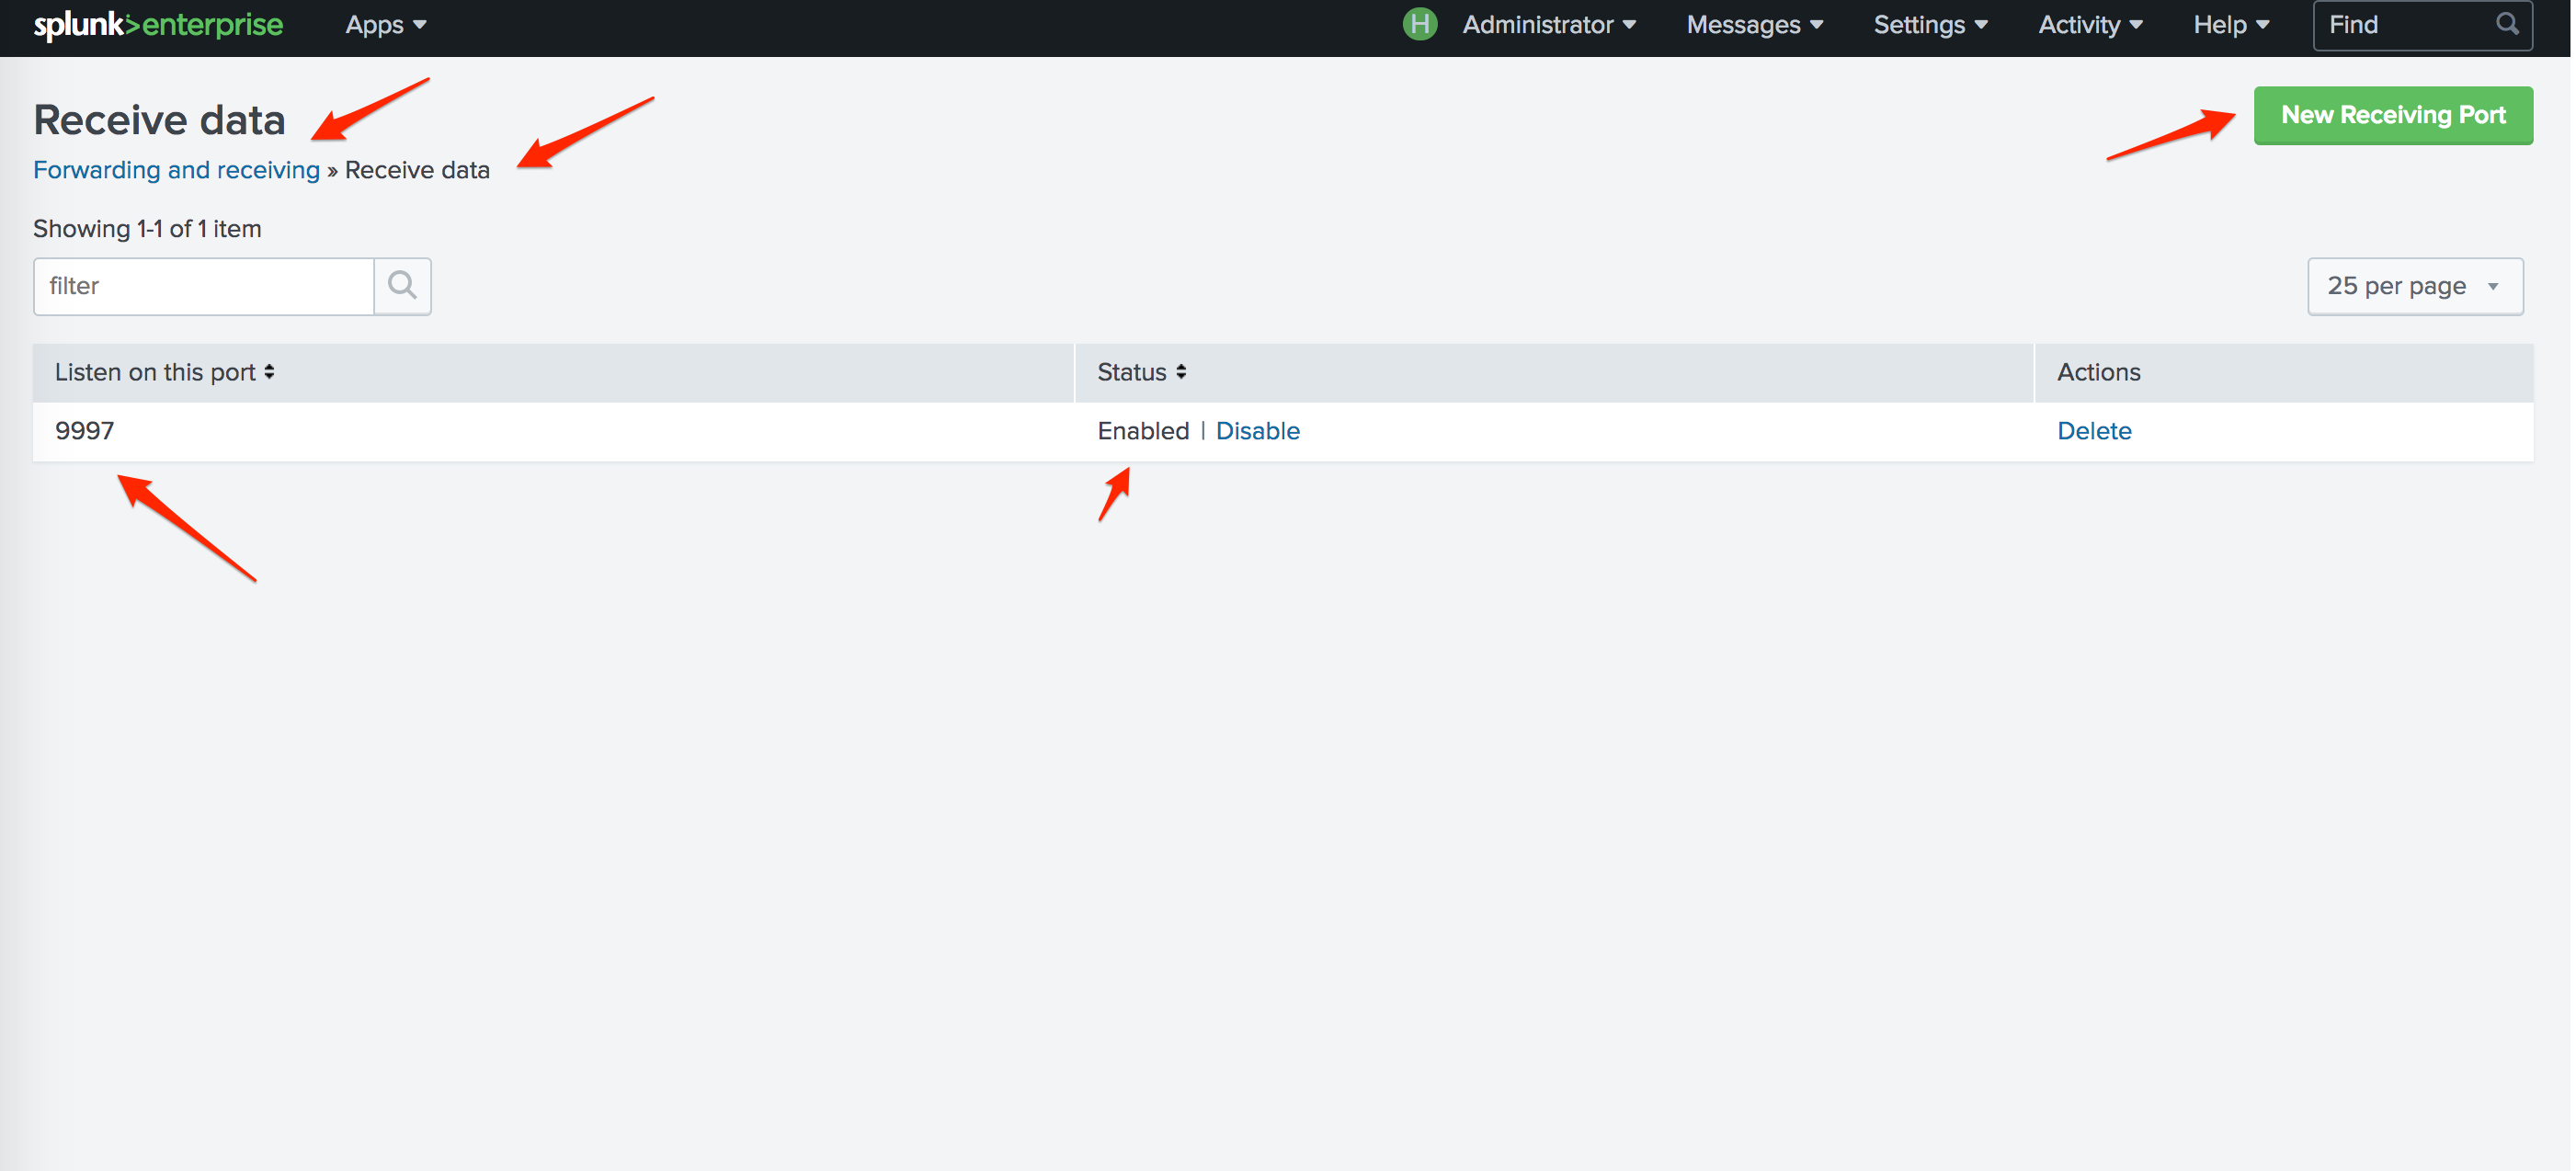 Enabling a receiver port in Splunk Application.